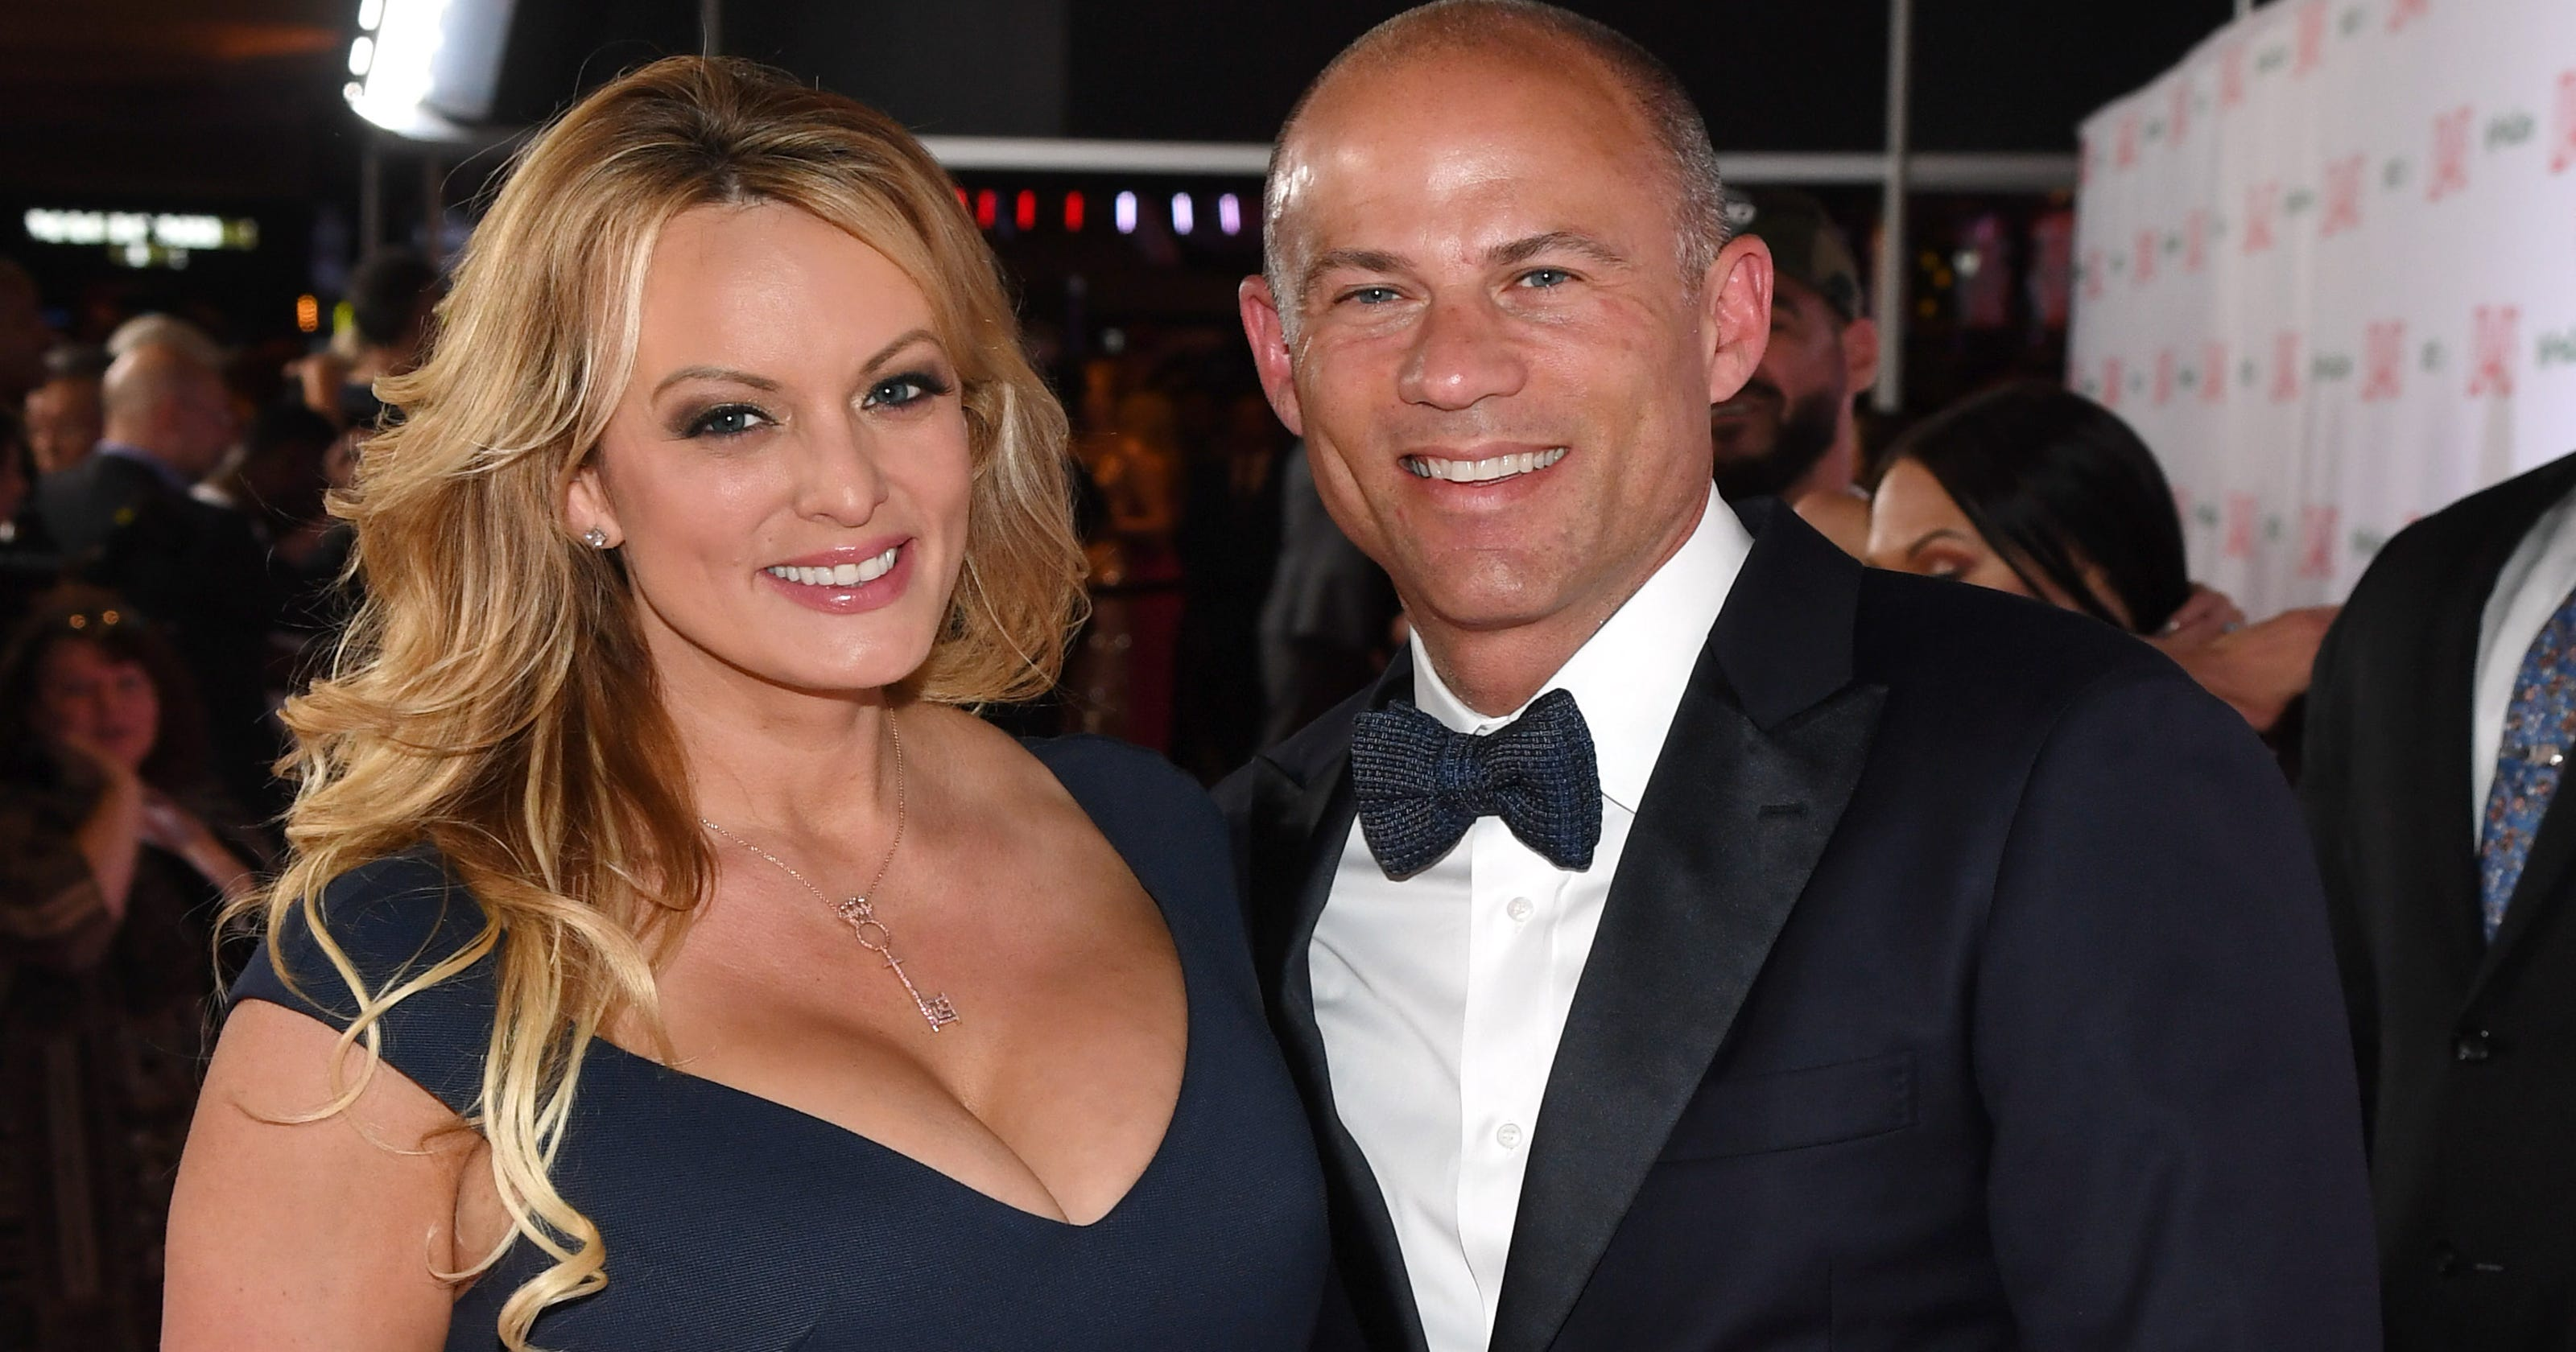 Michael Avenatti indicted on charges of stealing from Stormy Daniels after Trump legal battle